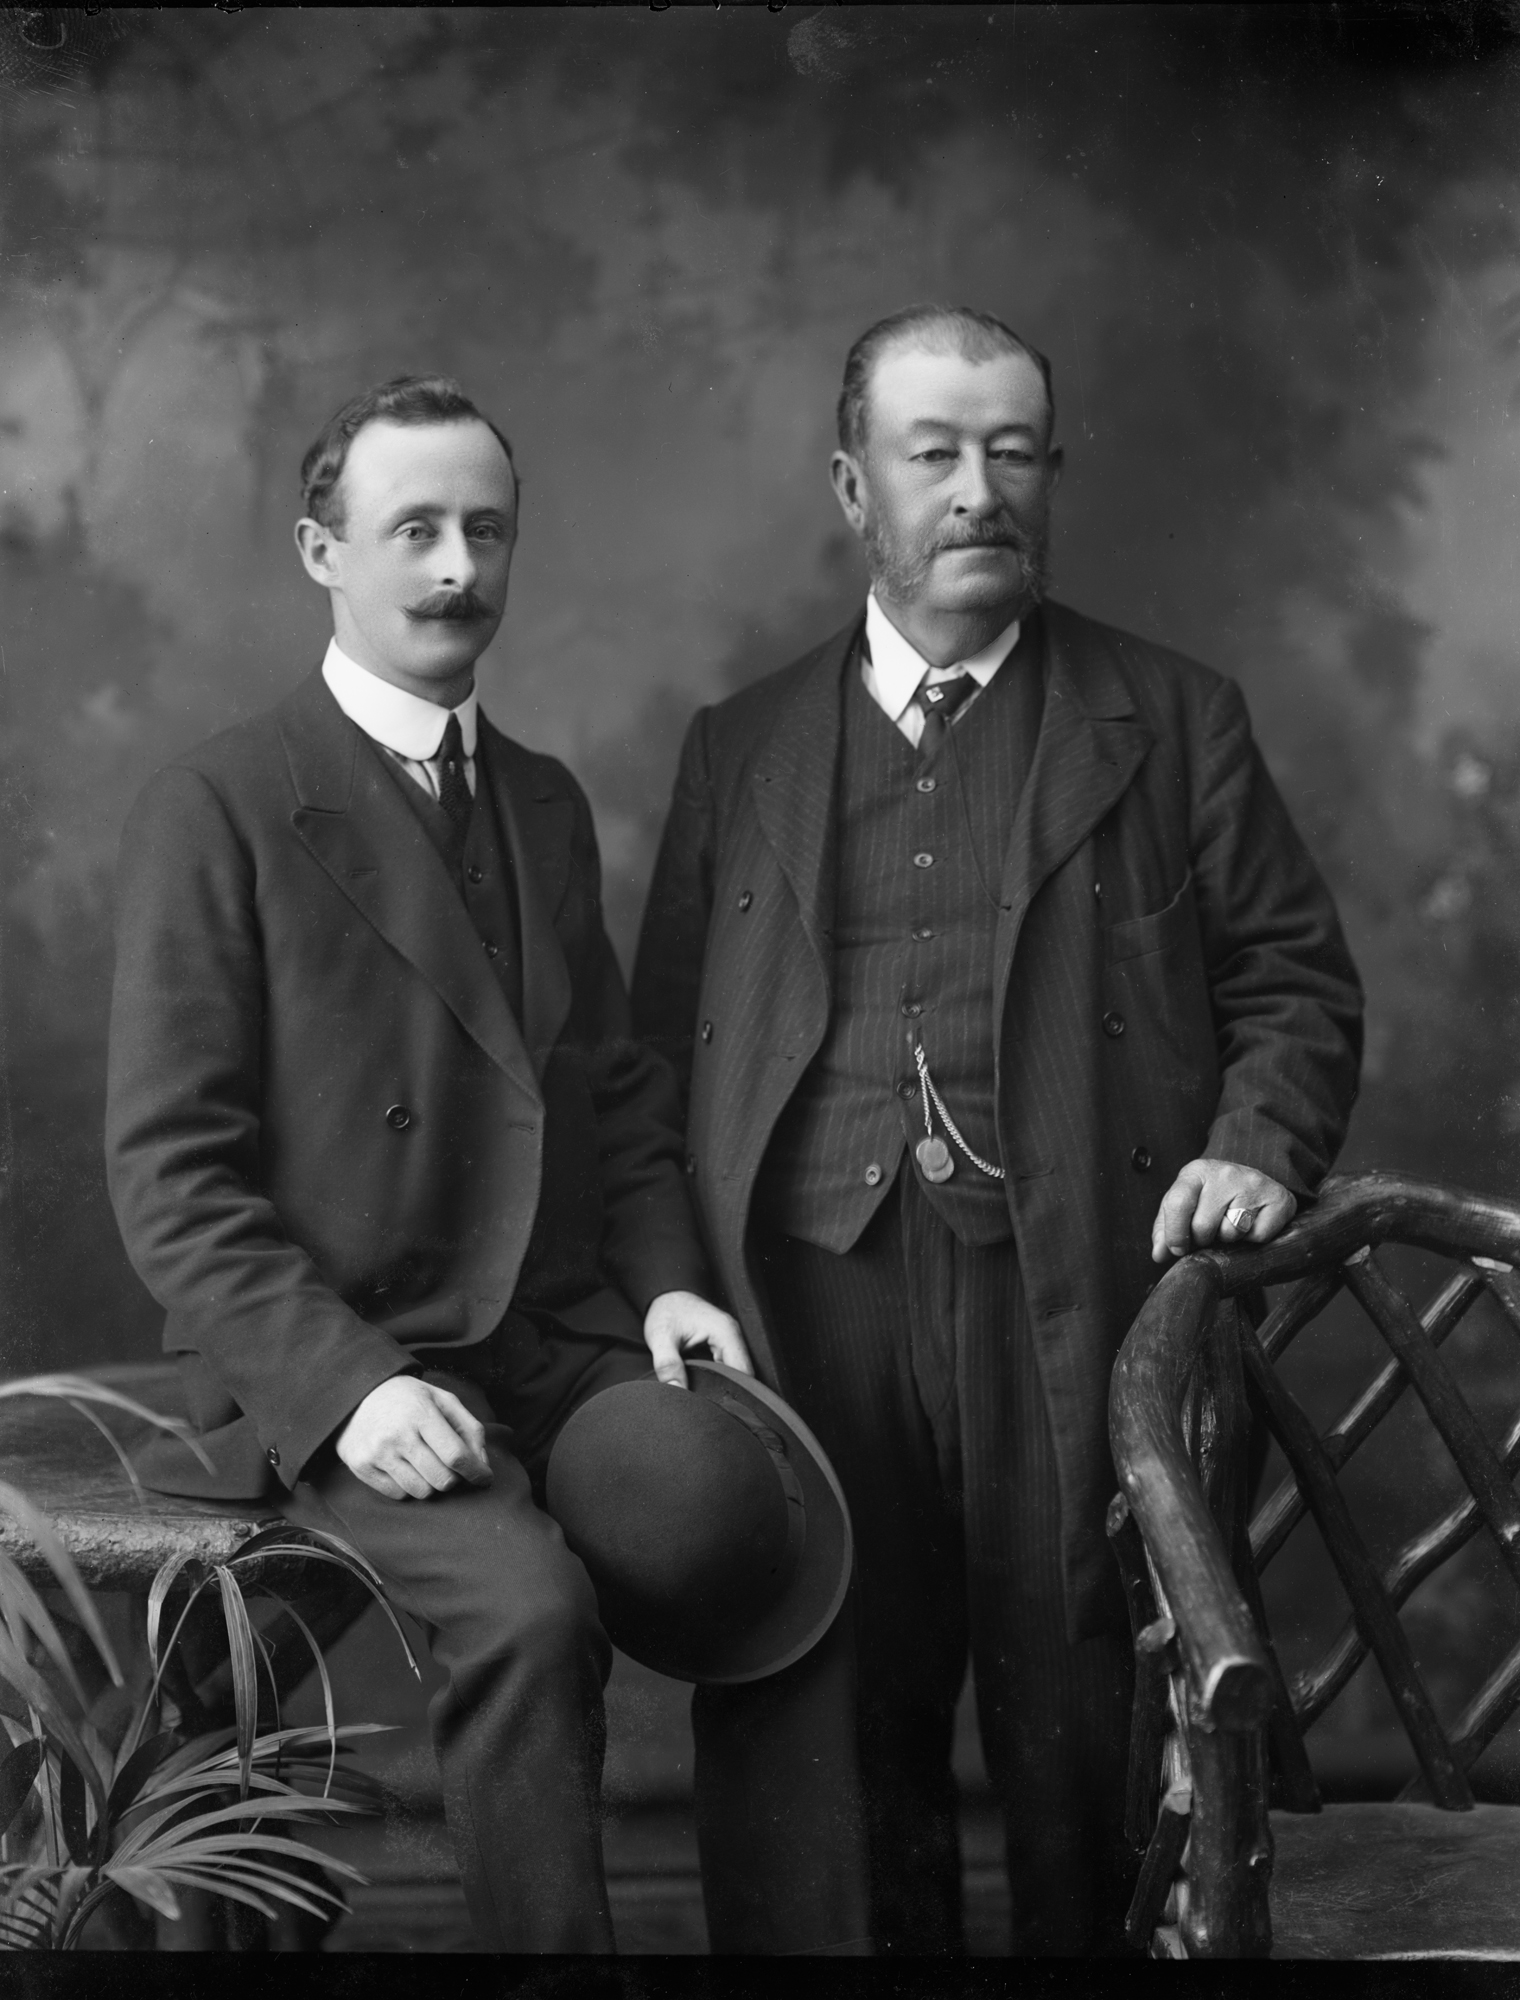 Group of two : commissioned by Mr. Synnott. Solicitor. Enniscorthy